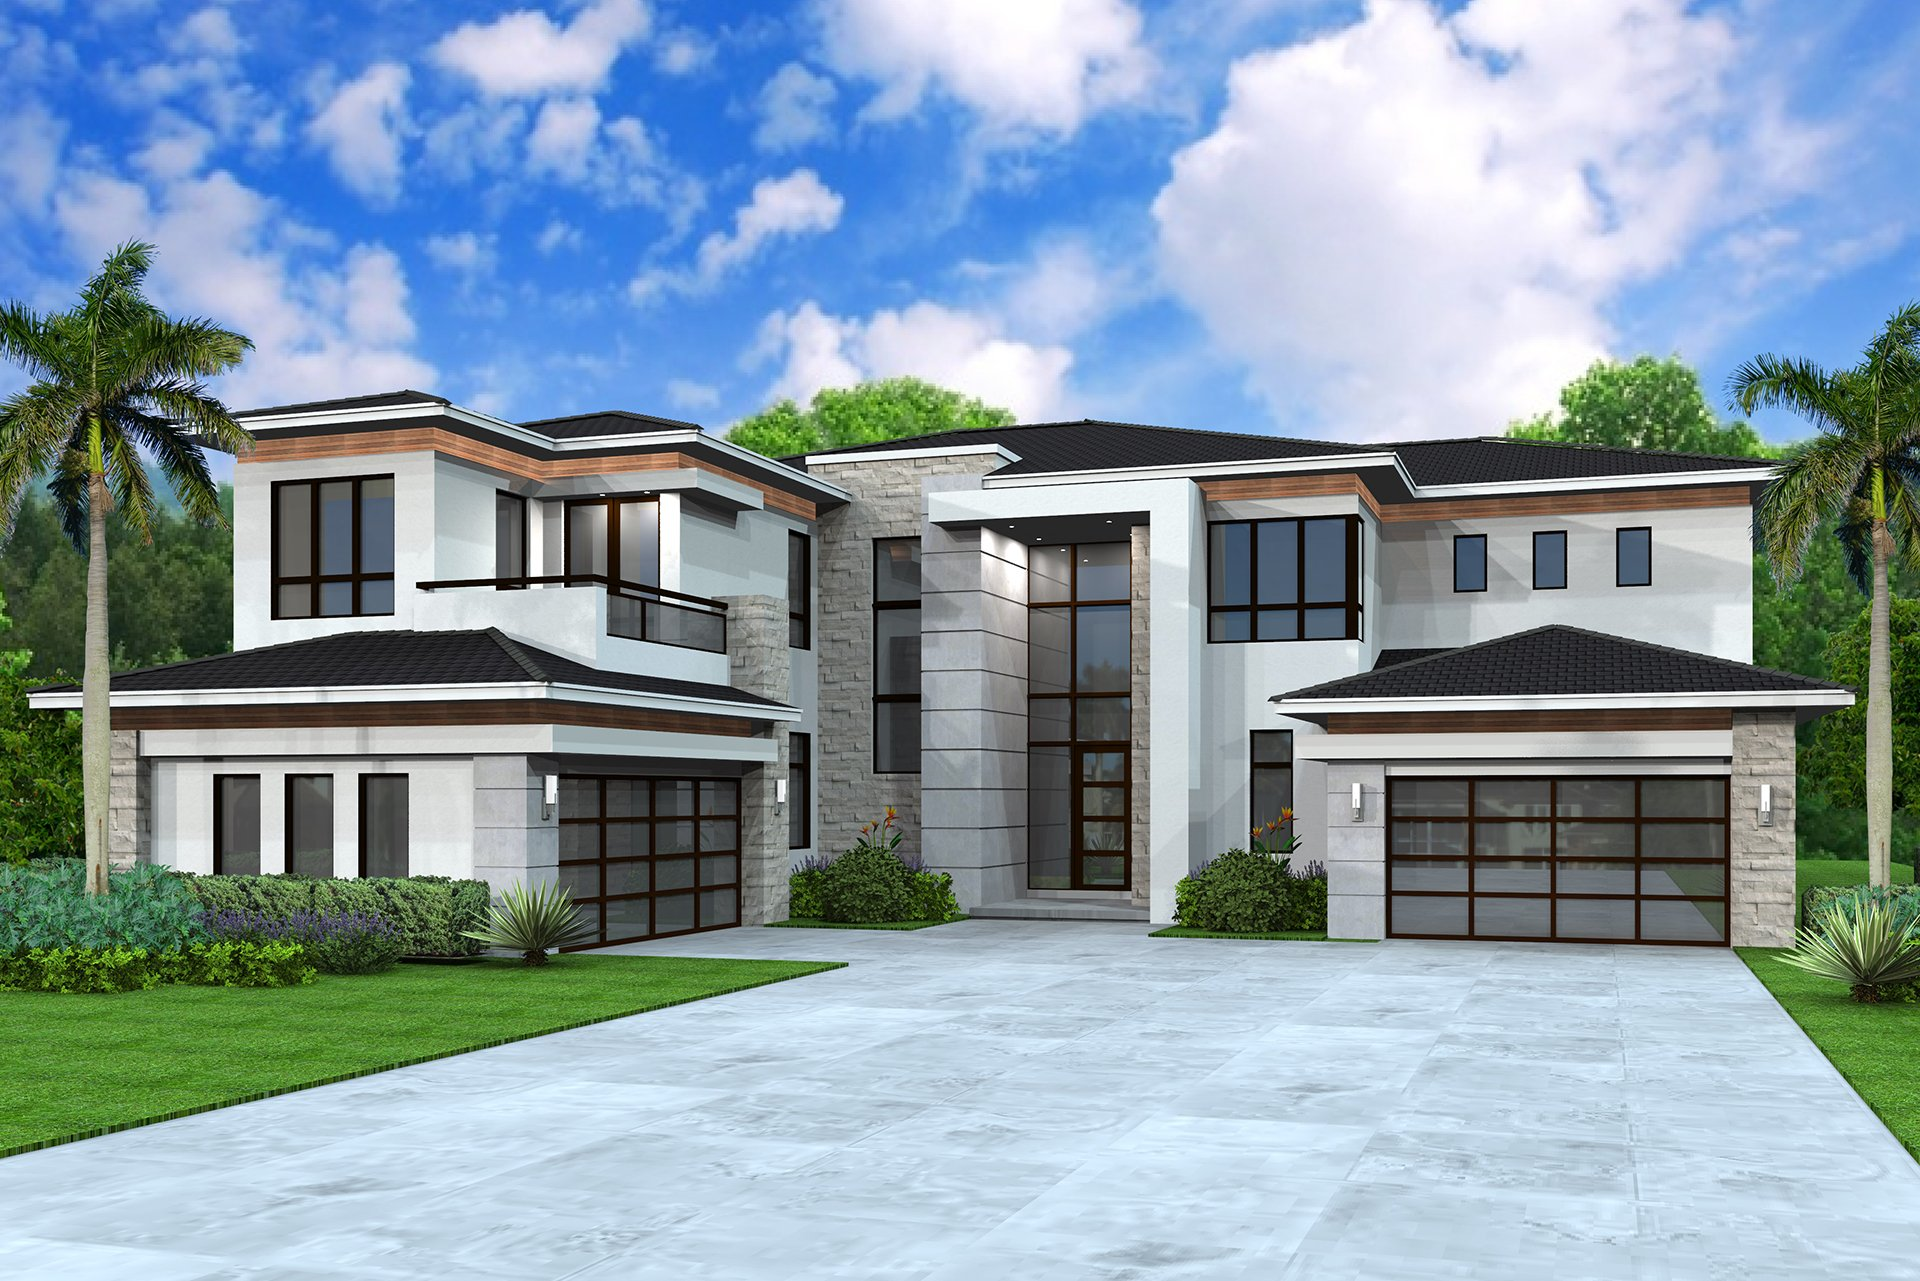 New Contemporary Home Designs Coming Soon Florida Real Estate Gl Homes